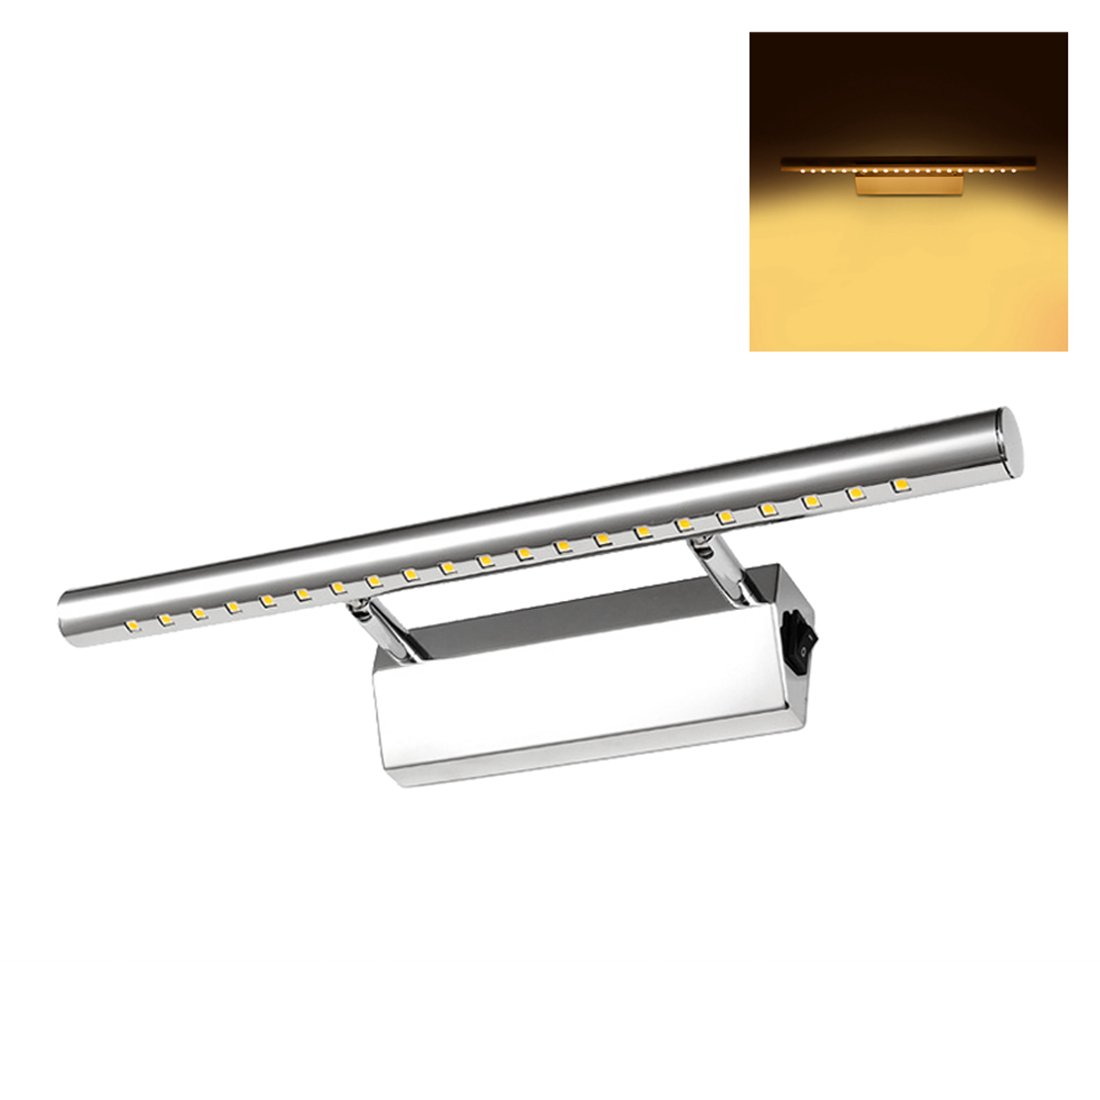 Mirror Light, Alotm 5W 21LEDs Bathroom Light Vanity Light with Switch, Make-Up Wall Mount Light, LED Lighting Fixture, Mirror Lamp Picture Front Lamp - 5050smd - Stainless Steel Chromed - Warm White